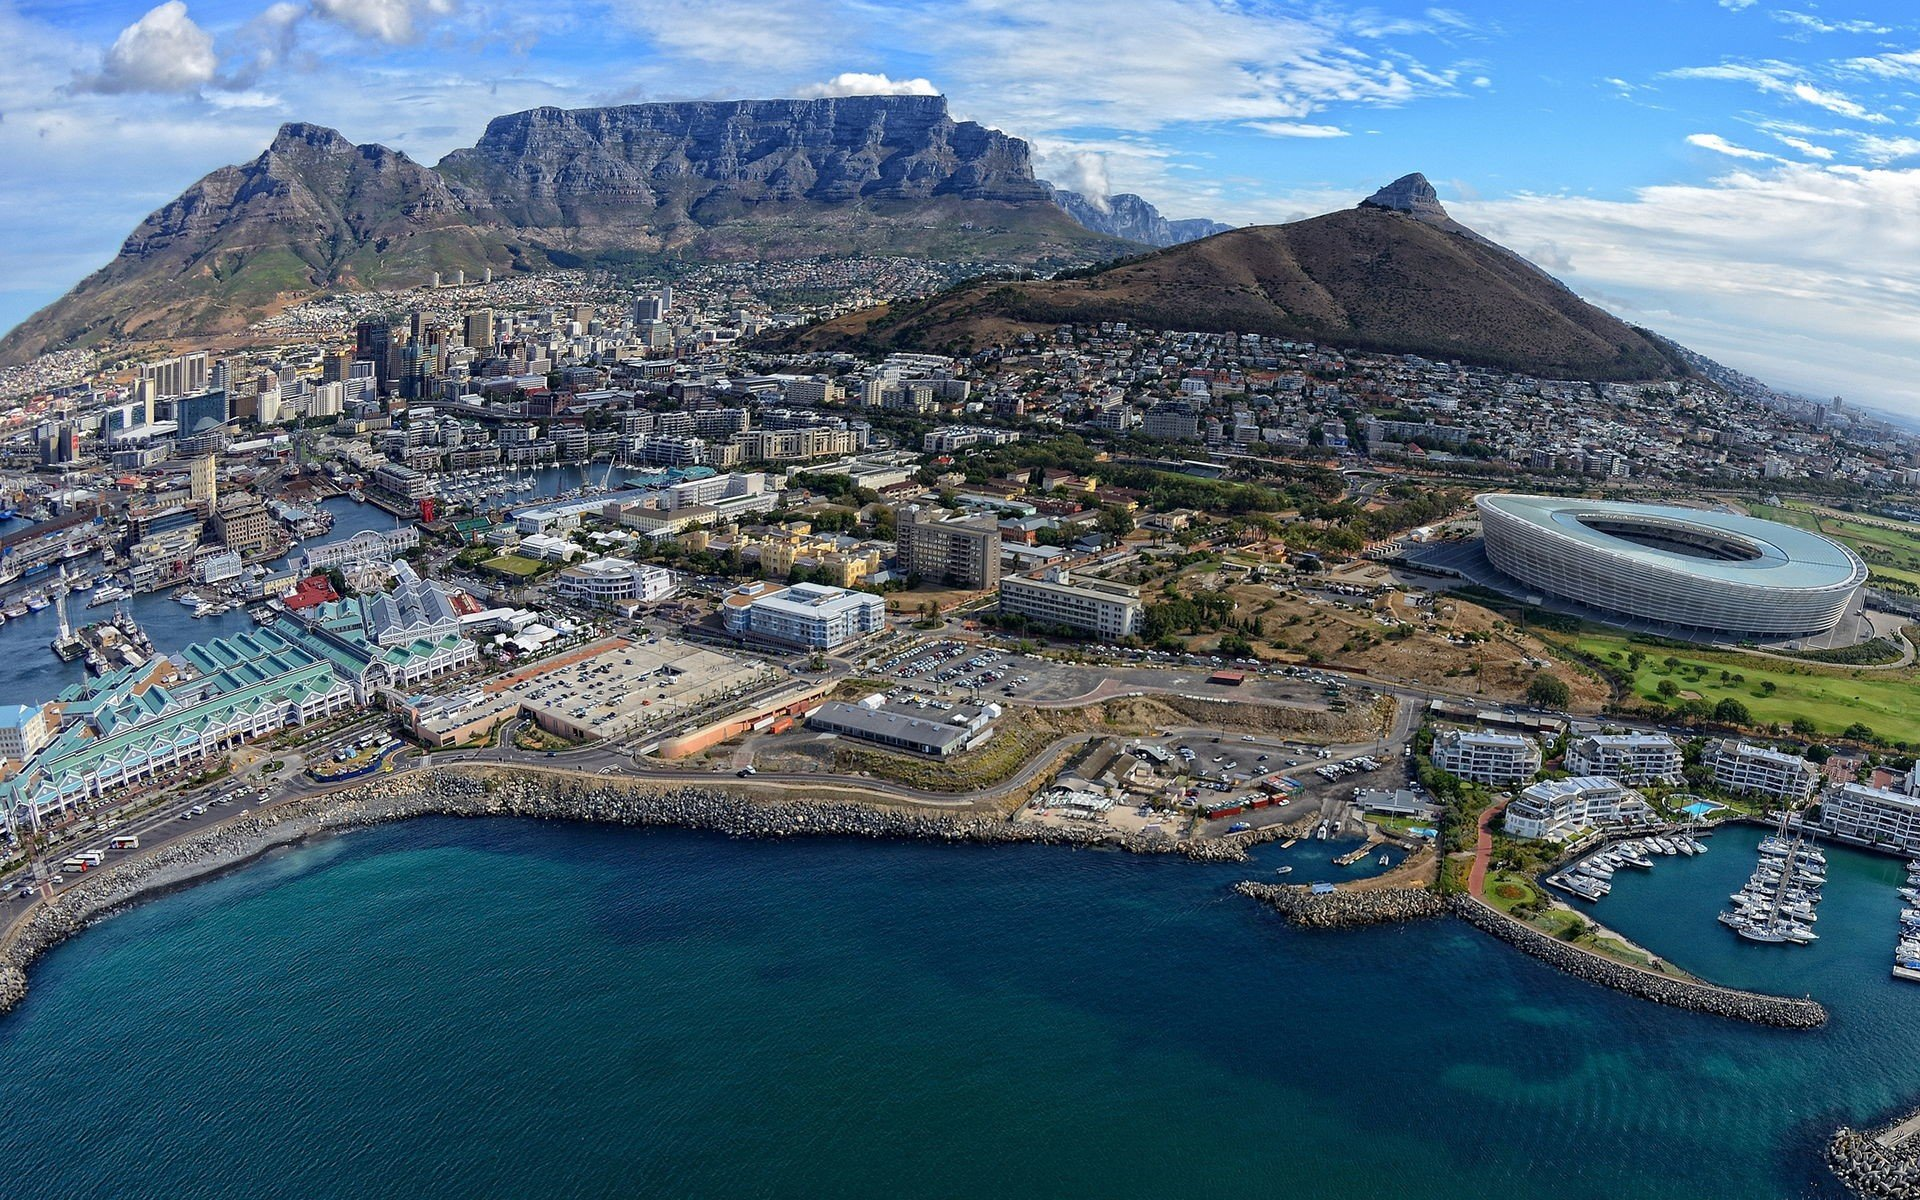 Pictures of Cape Town